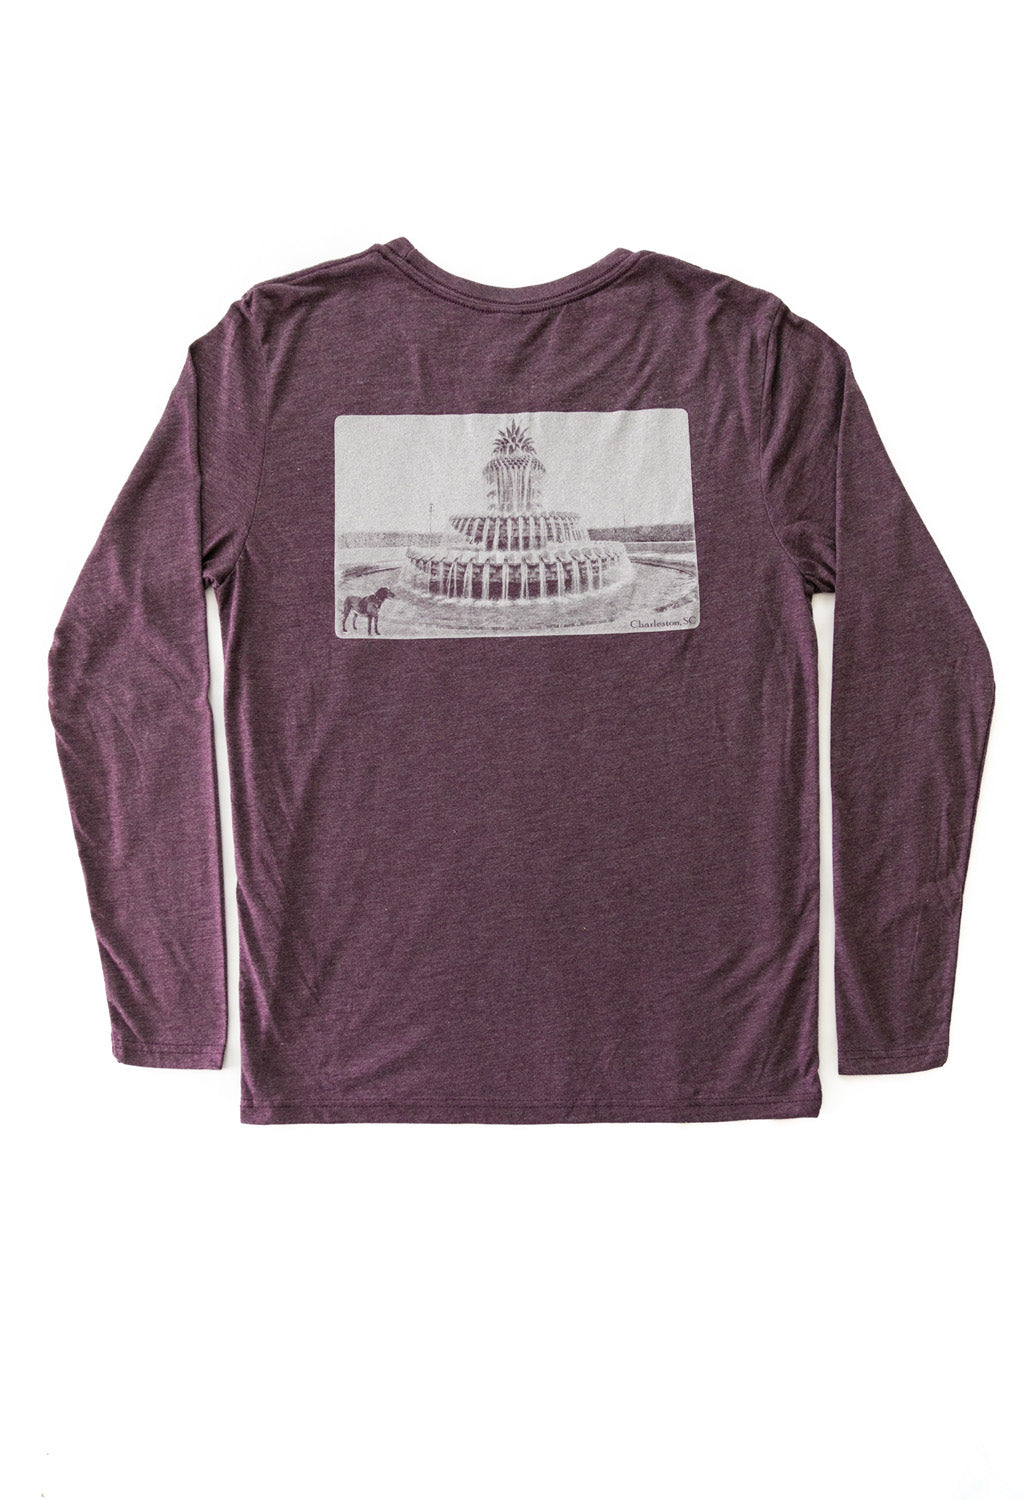 Charleston-Pineapple Fountain Long Sleeve T-shirt